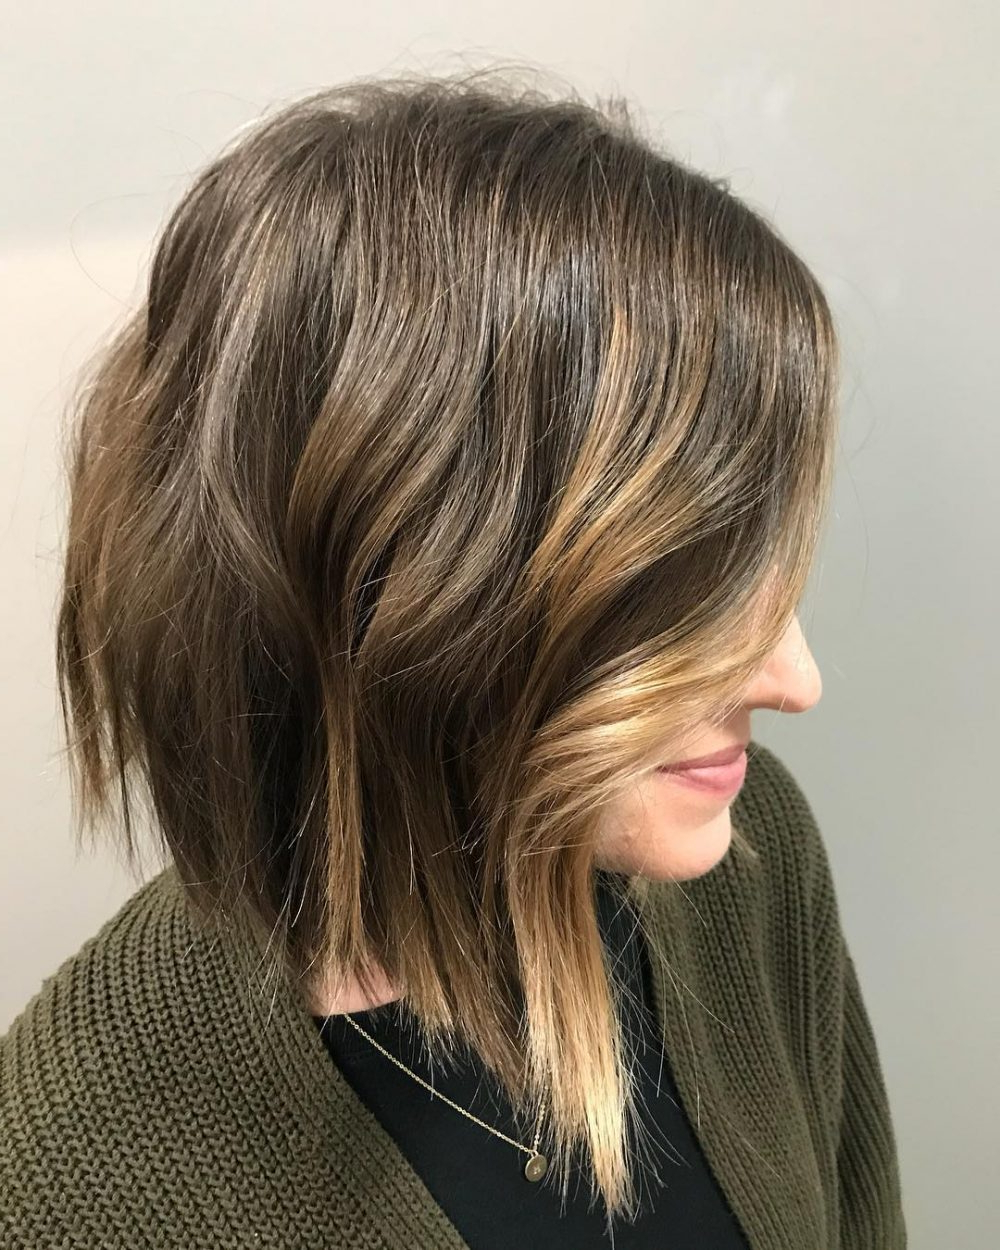 100 Hottest Choppy Bob Hairstyles For Women In 2019 Within Most Recent Chopped Medium Haircuts For Straight Hair (Gallery 10 of 20)